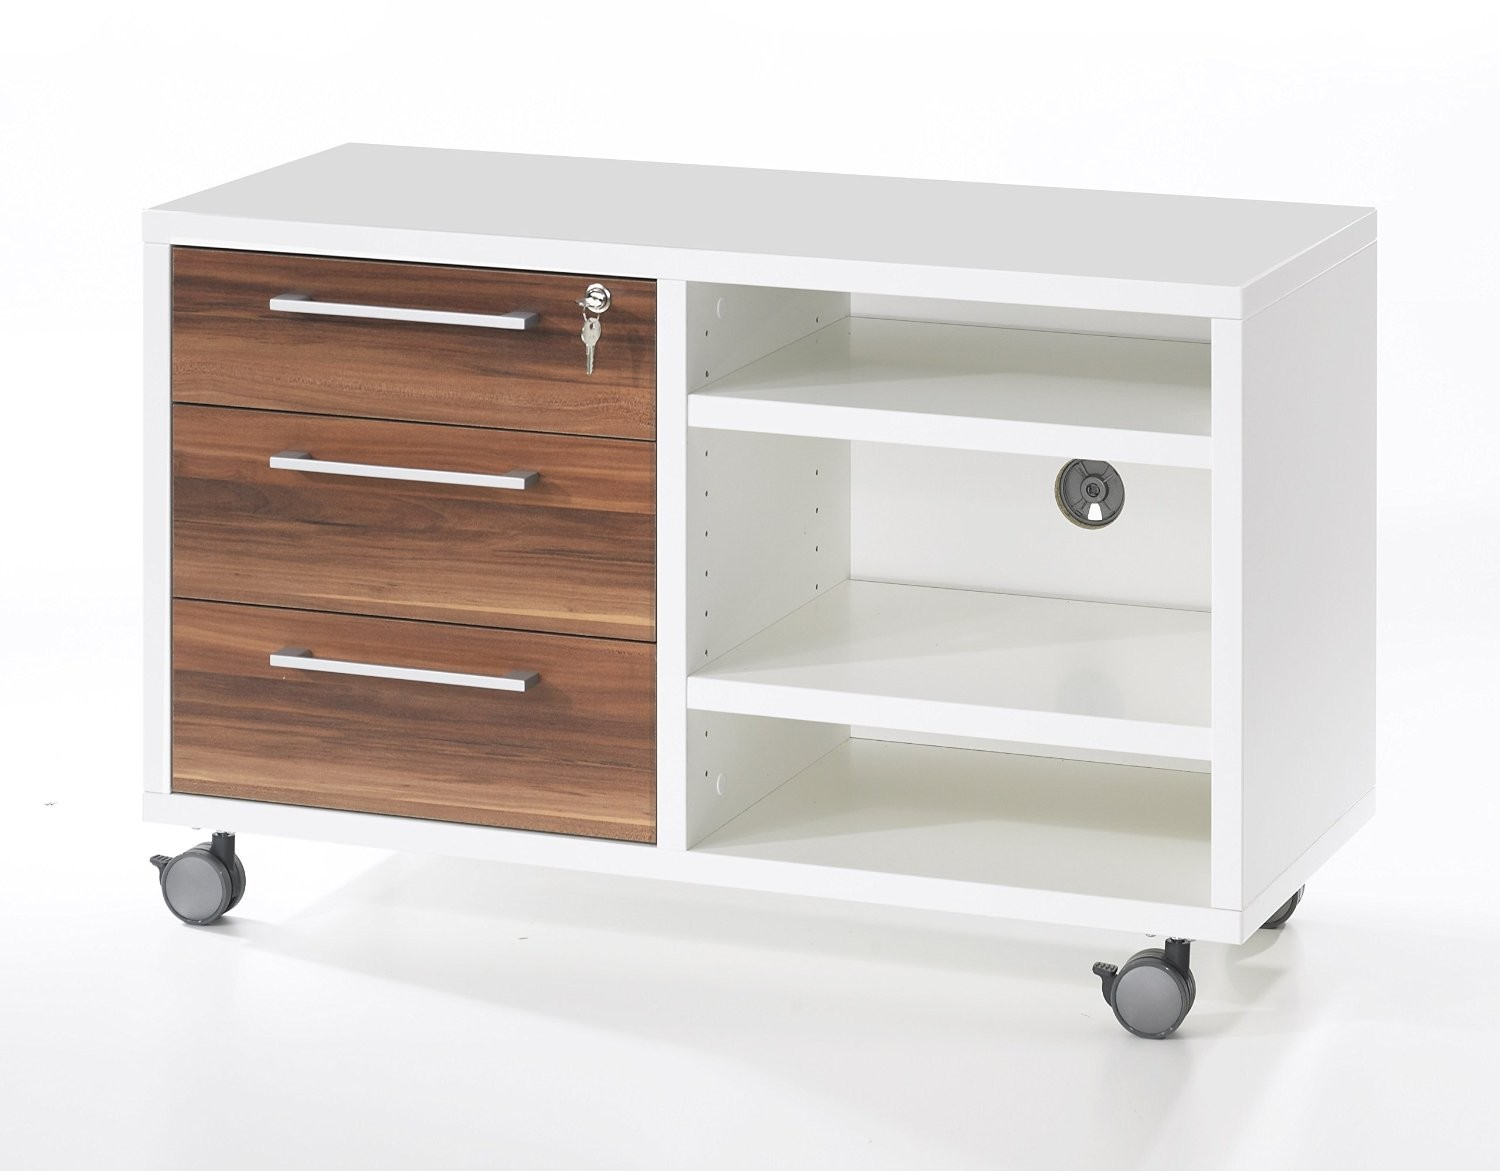 1126055305 in addition Deep 1 Filer 2 Drawer Desk High Lp Office Desk Pedestal Various Finishes further Bedroom additionally Bedroom further 34 Ideas For Chippy Distressed Painted Furniture. on lockable chest of drawers white